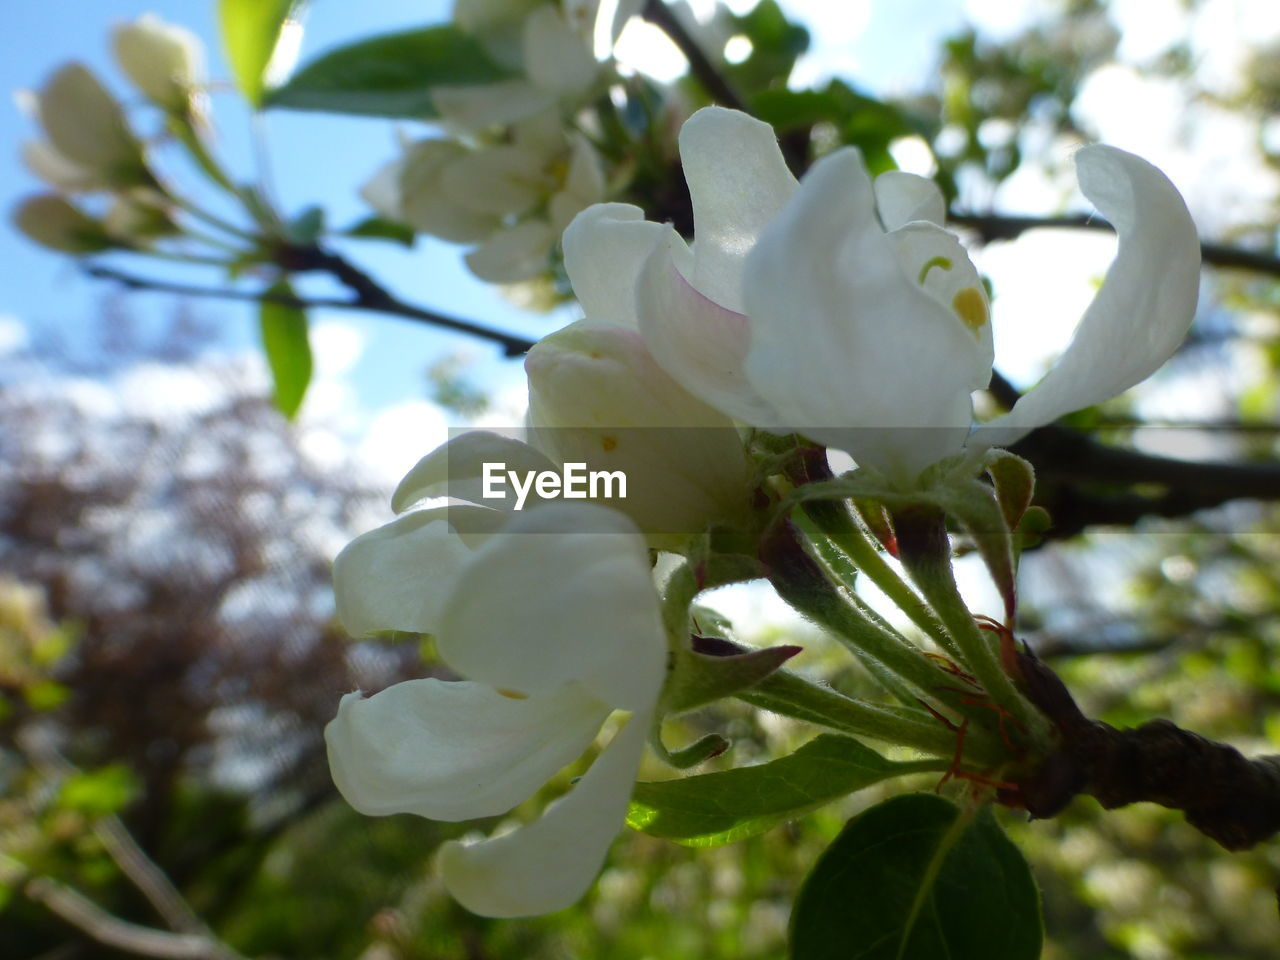 flower, beauty in nature, fragility, growth, nature, blossom, petal, tree, springtime, white color, freshness, branch, botany, apple blossom, flower head, magnolia, day, twig, no people, close-up, orchard, low angle view, stamen, selective focus, outdoors, blooming, pink color, plant, plum blossom